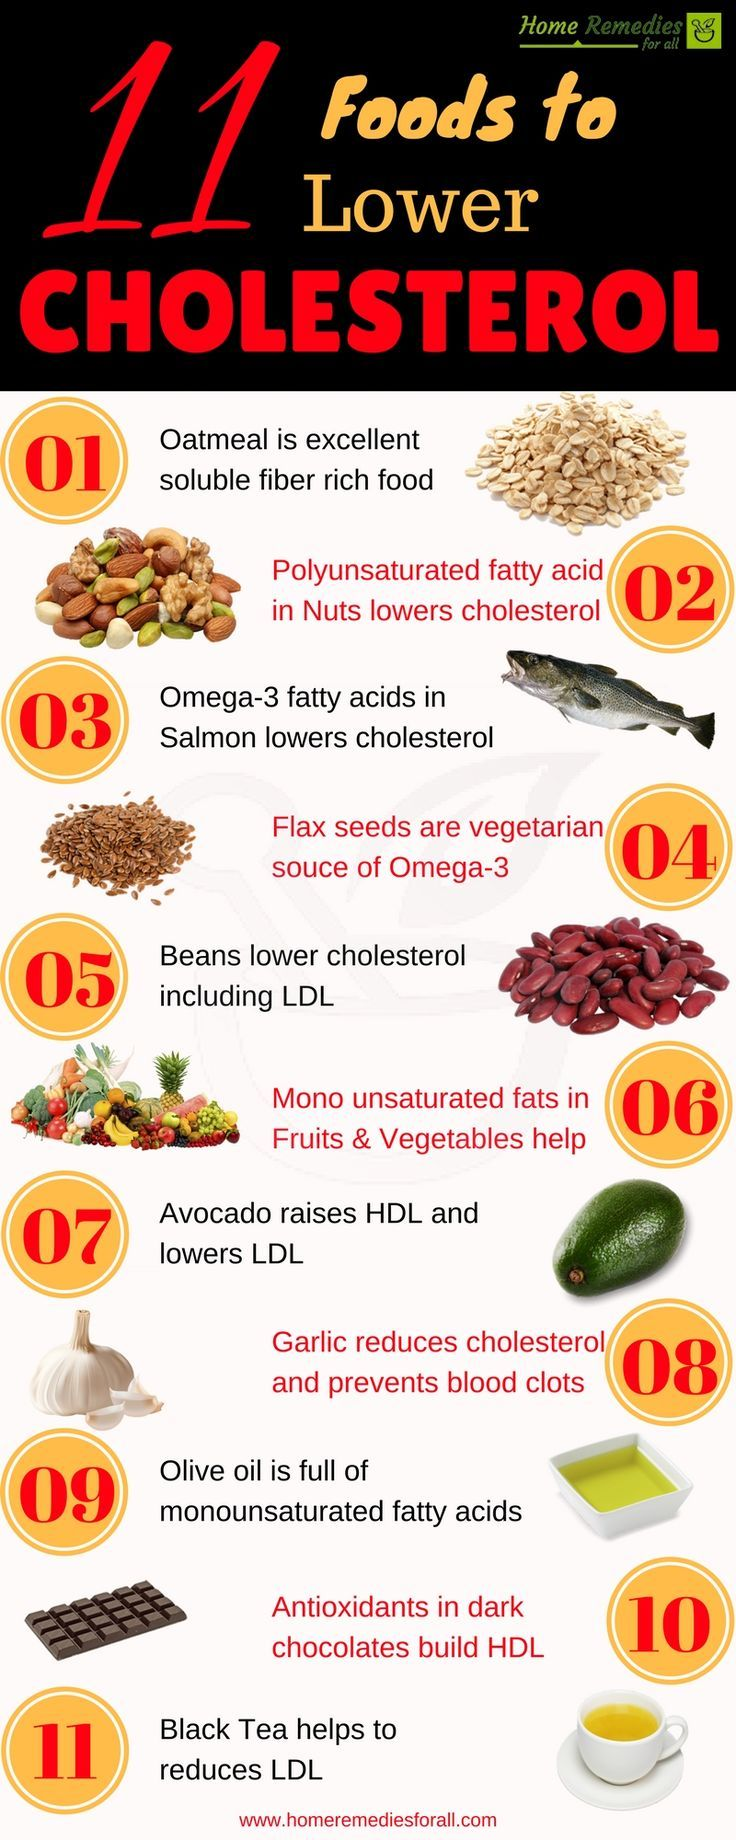 11 Power Foods for Lower Cholesterol